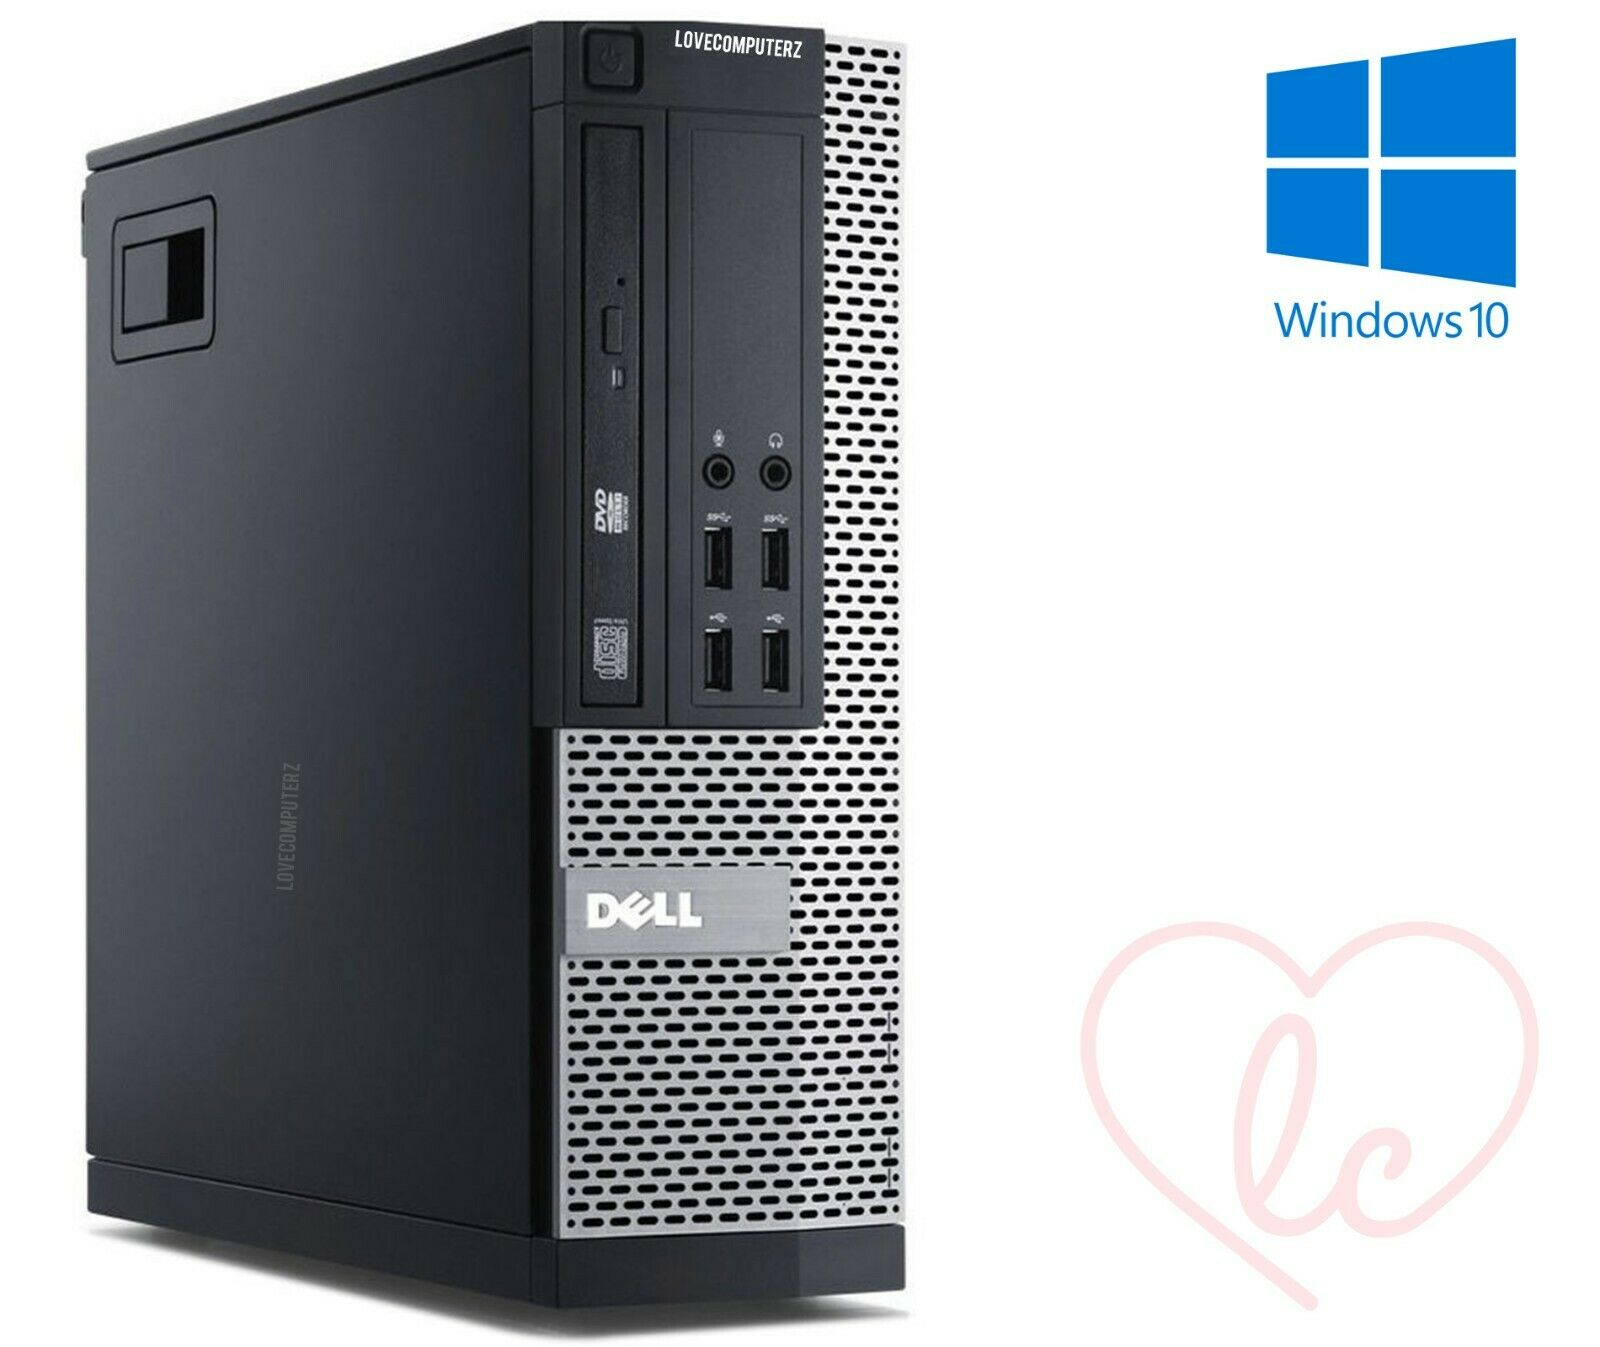 Computer Games - FAST GAMING DELL BUNDLE TOWER PC FORNITE COMPUTER SYSTEM INTEL i3 8GB 1TB GT710